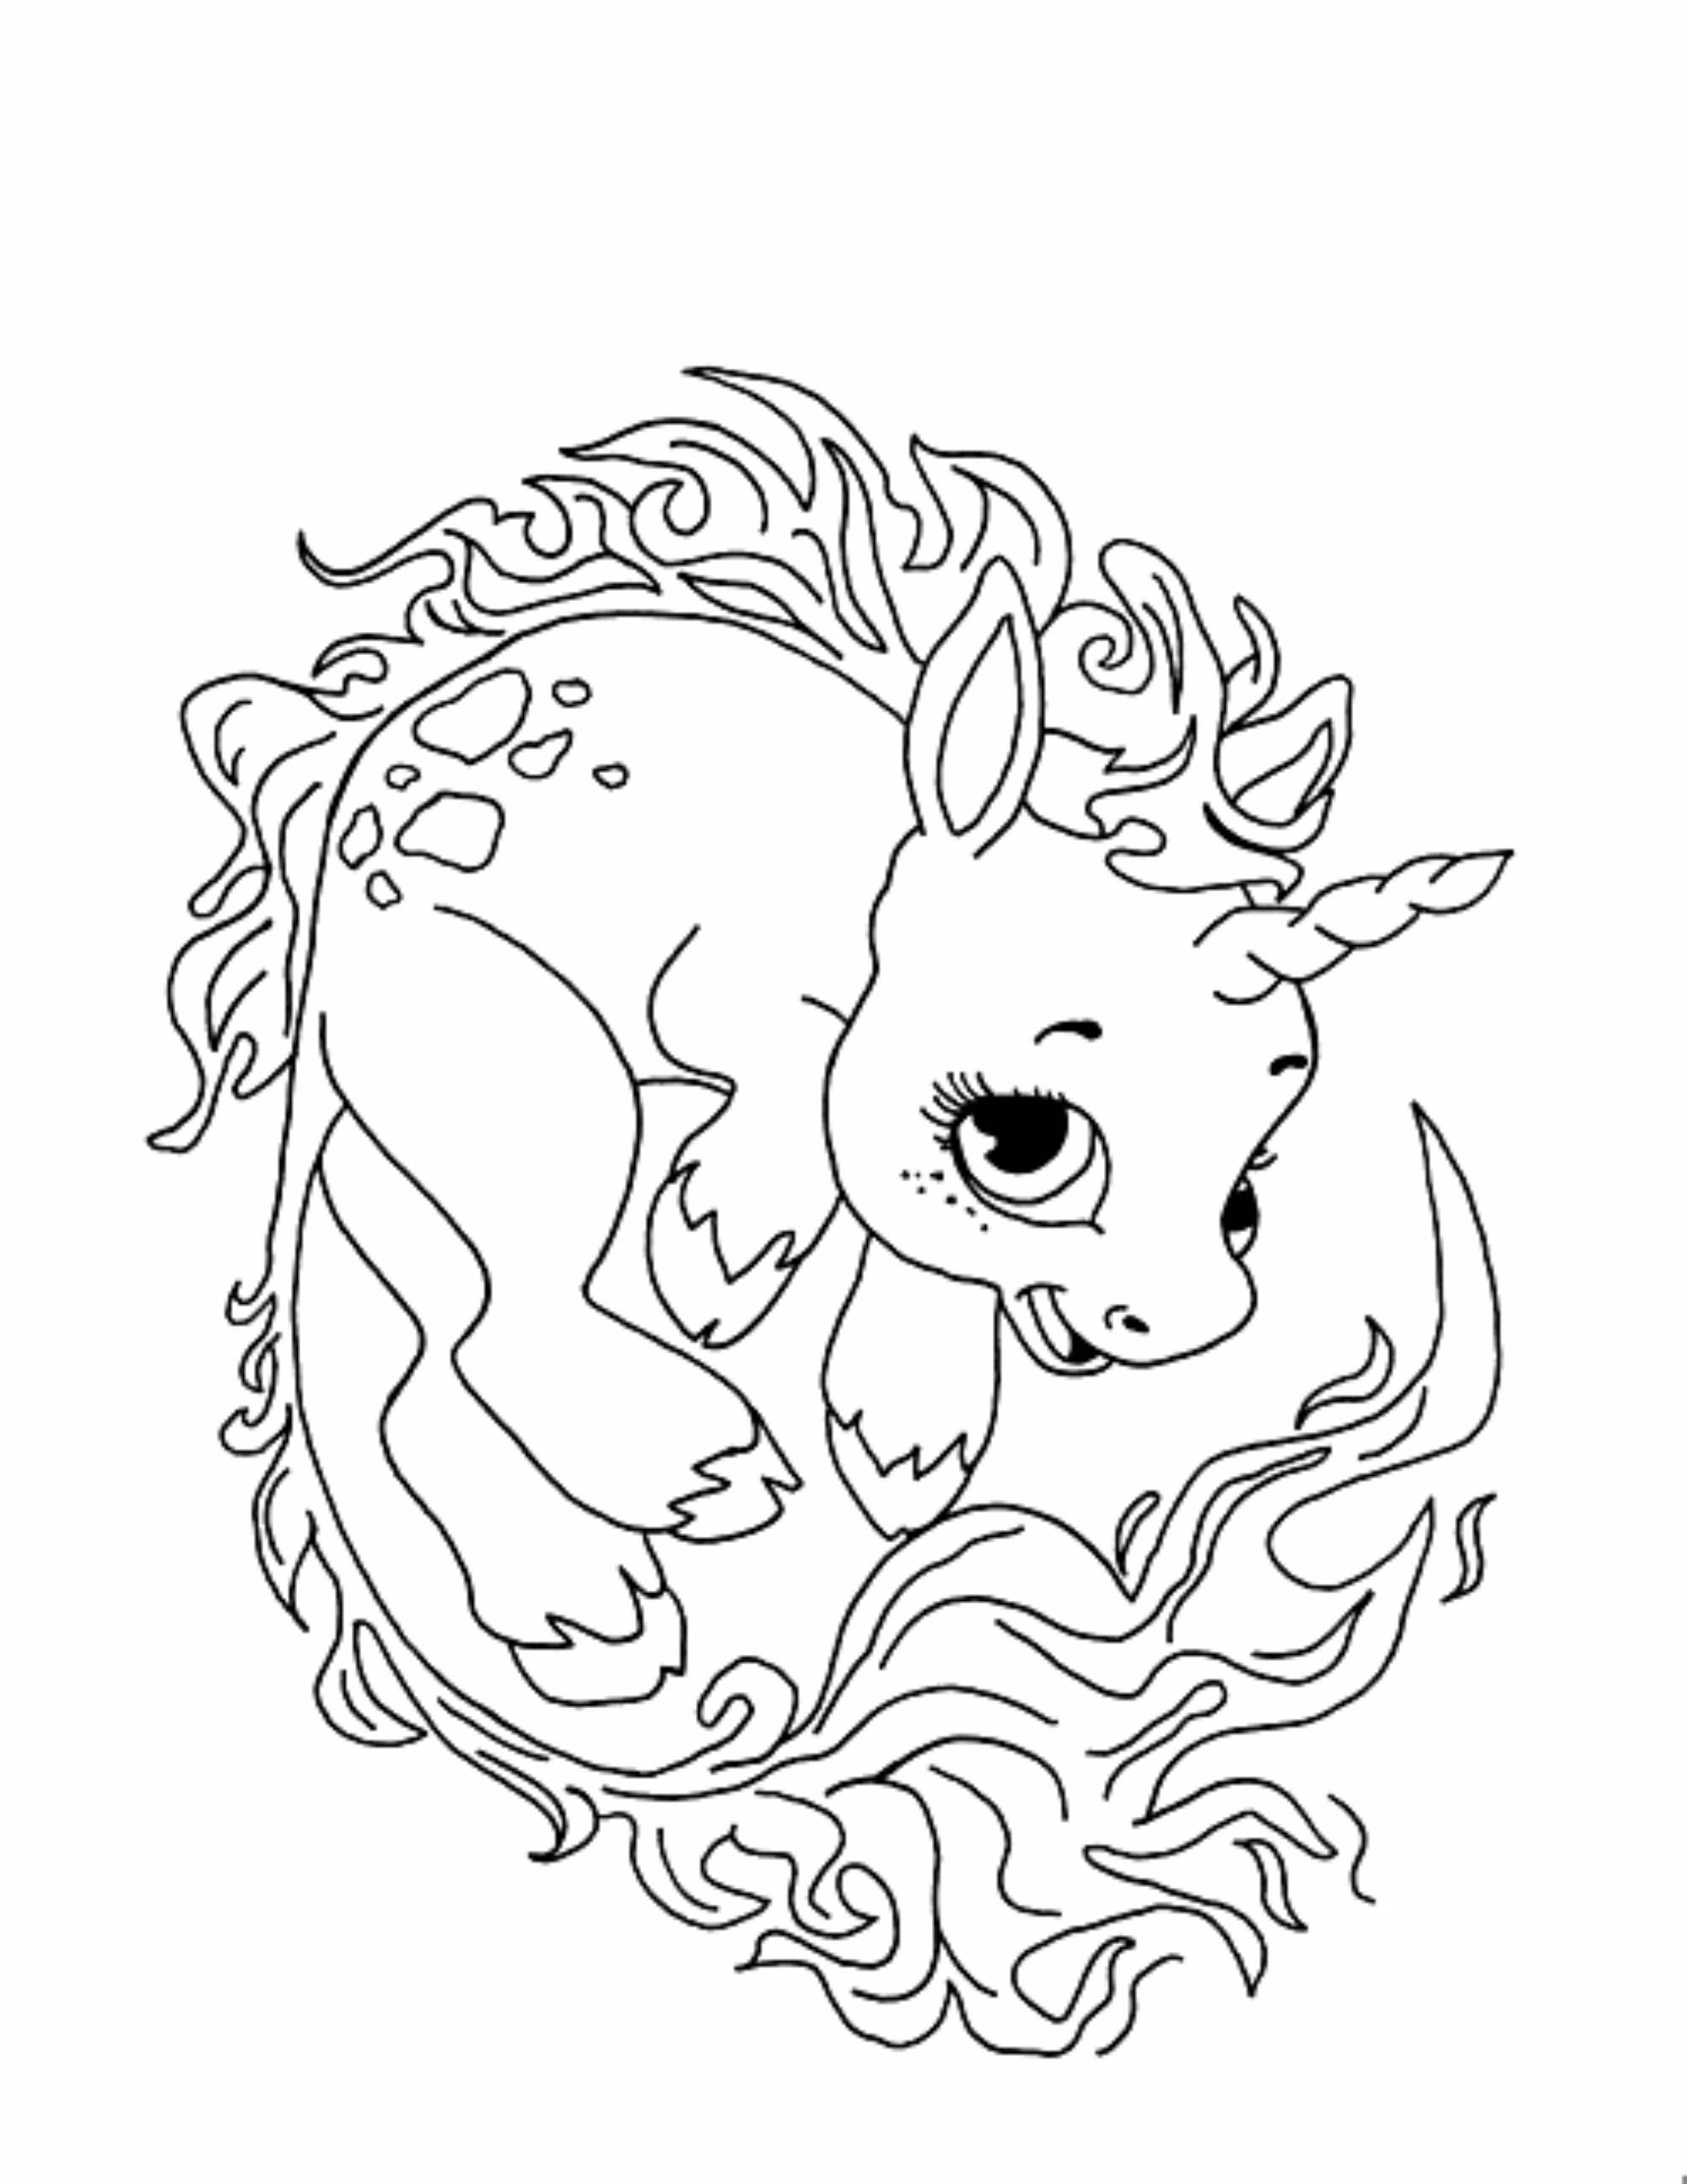 6 Pics Of Cute Unicorn Coloring Pages